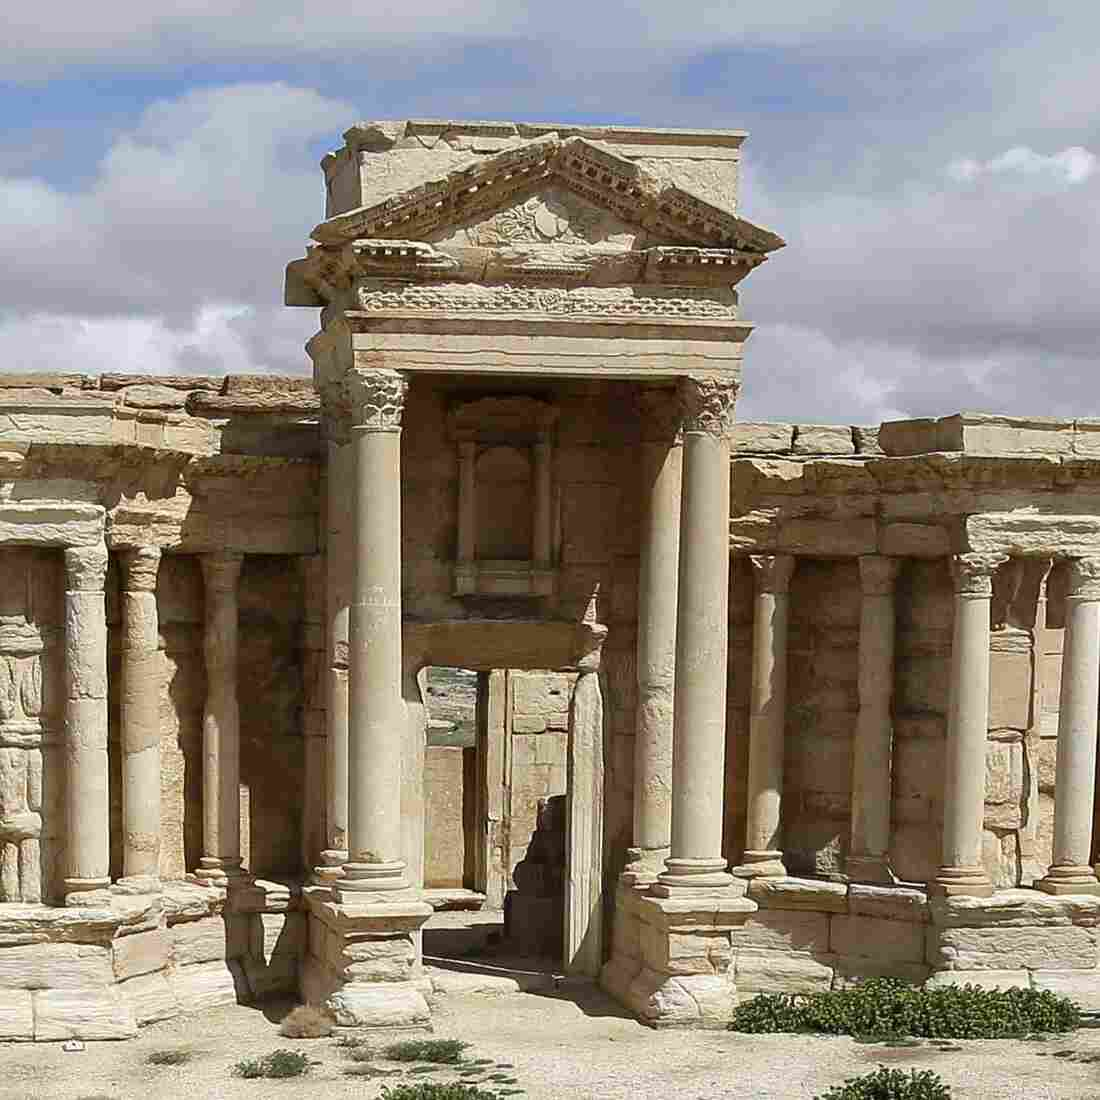 Smugglers Thrive On Syria's Chaos, Looting Cultural Treasures